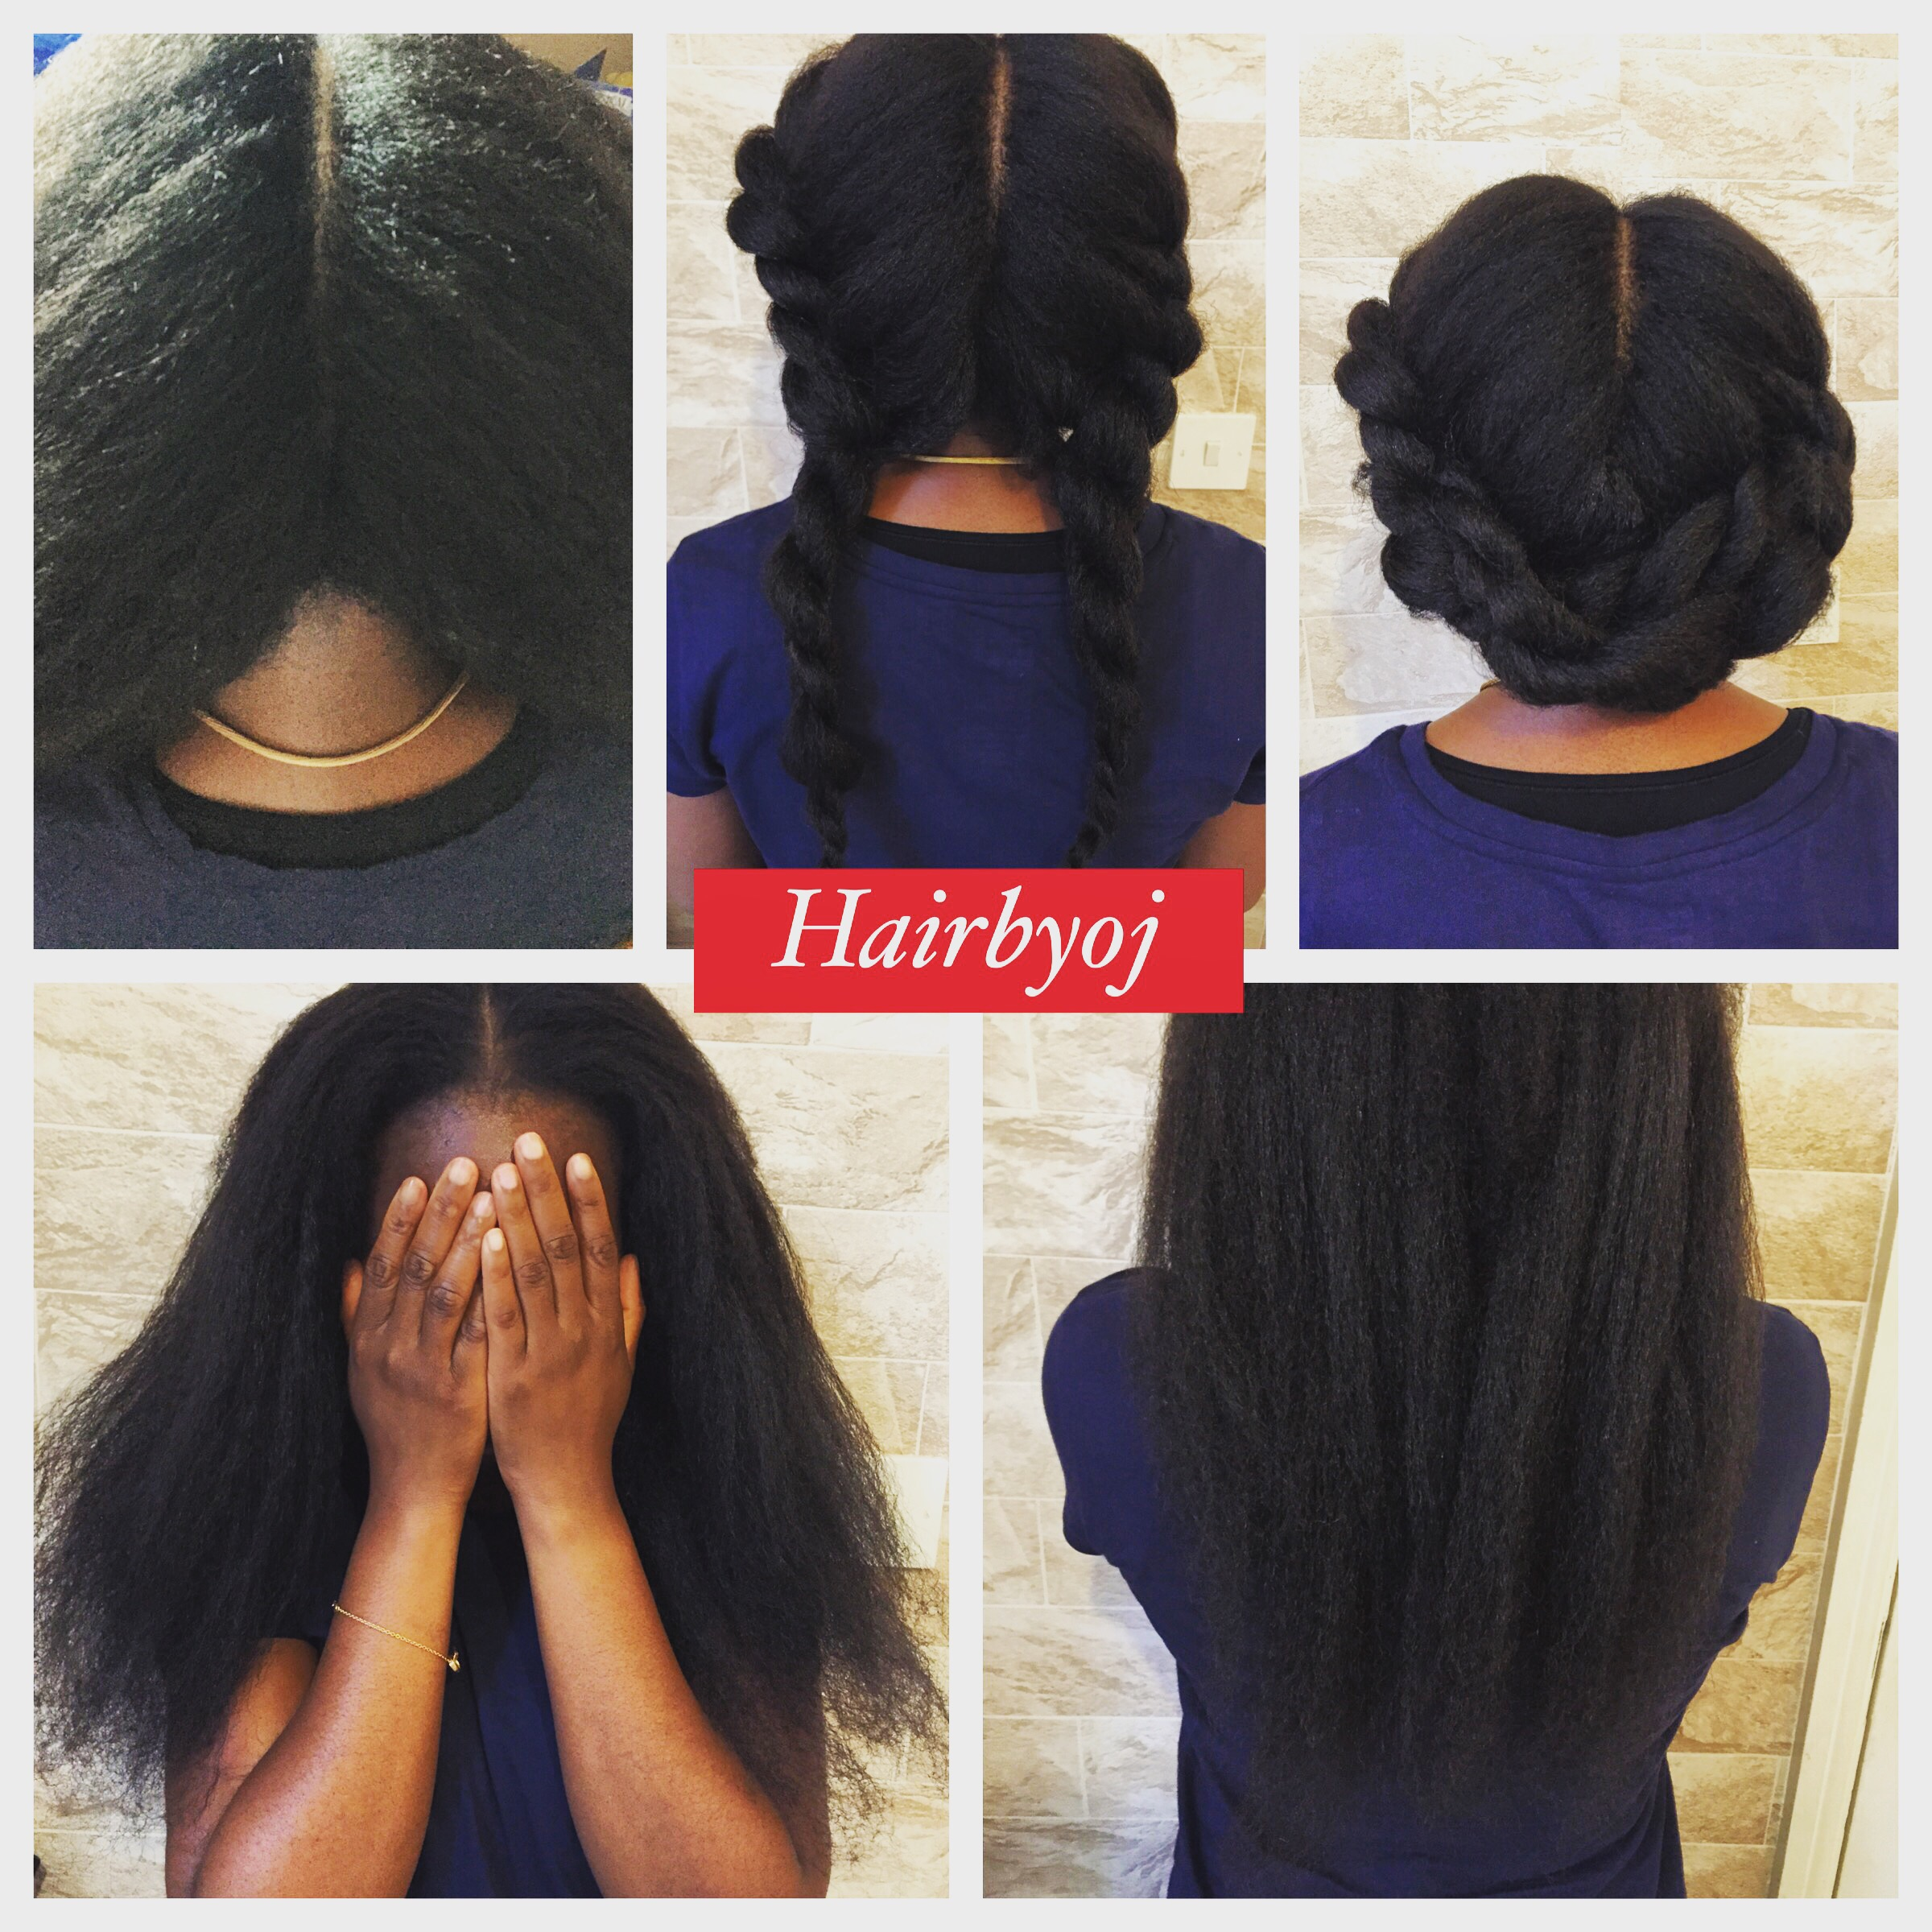 Crochet Marley Hair Vixen : ... way part vixen crochet braids with blowdried Marley hair ? hairbyoj